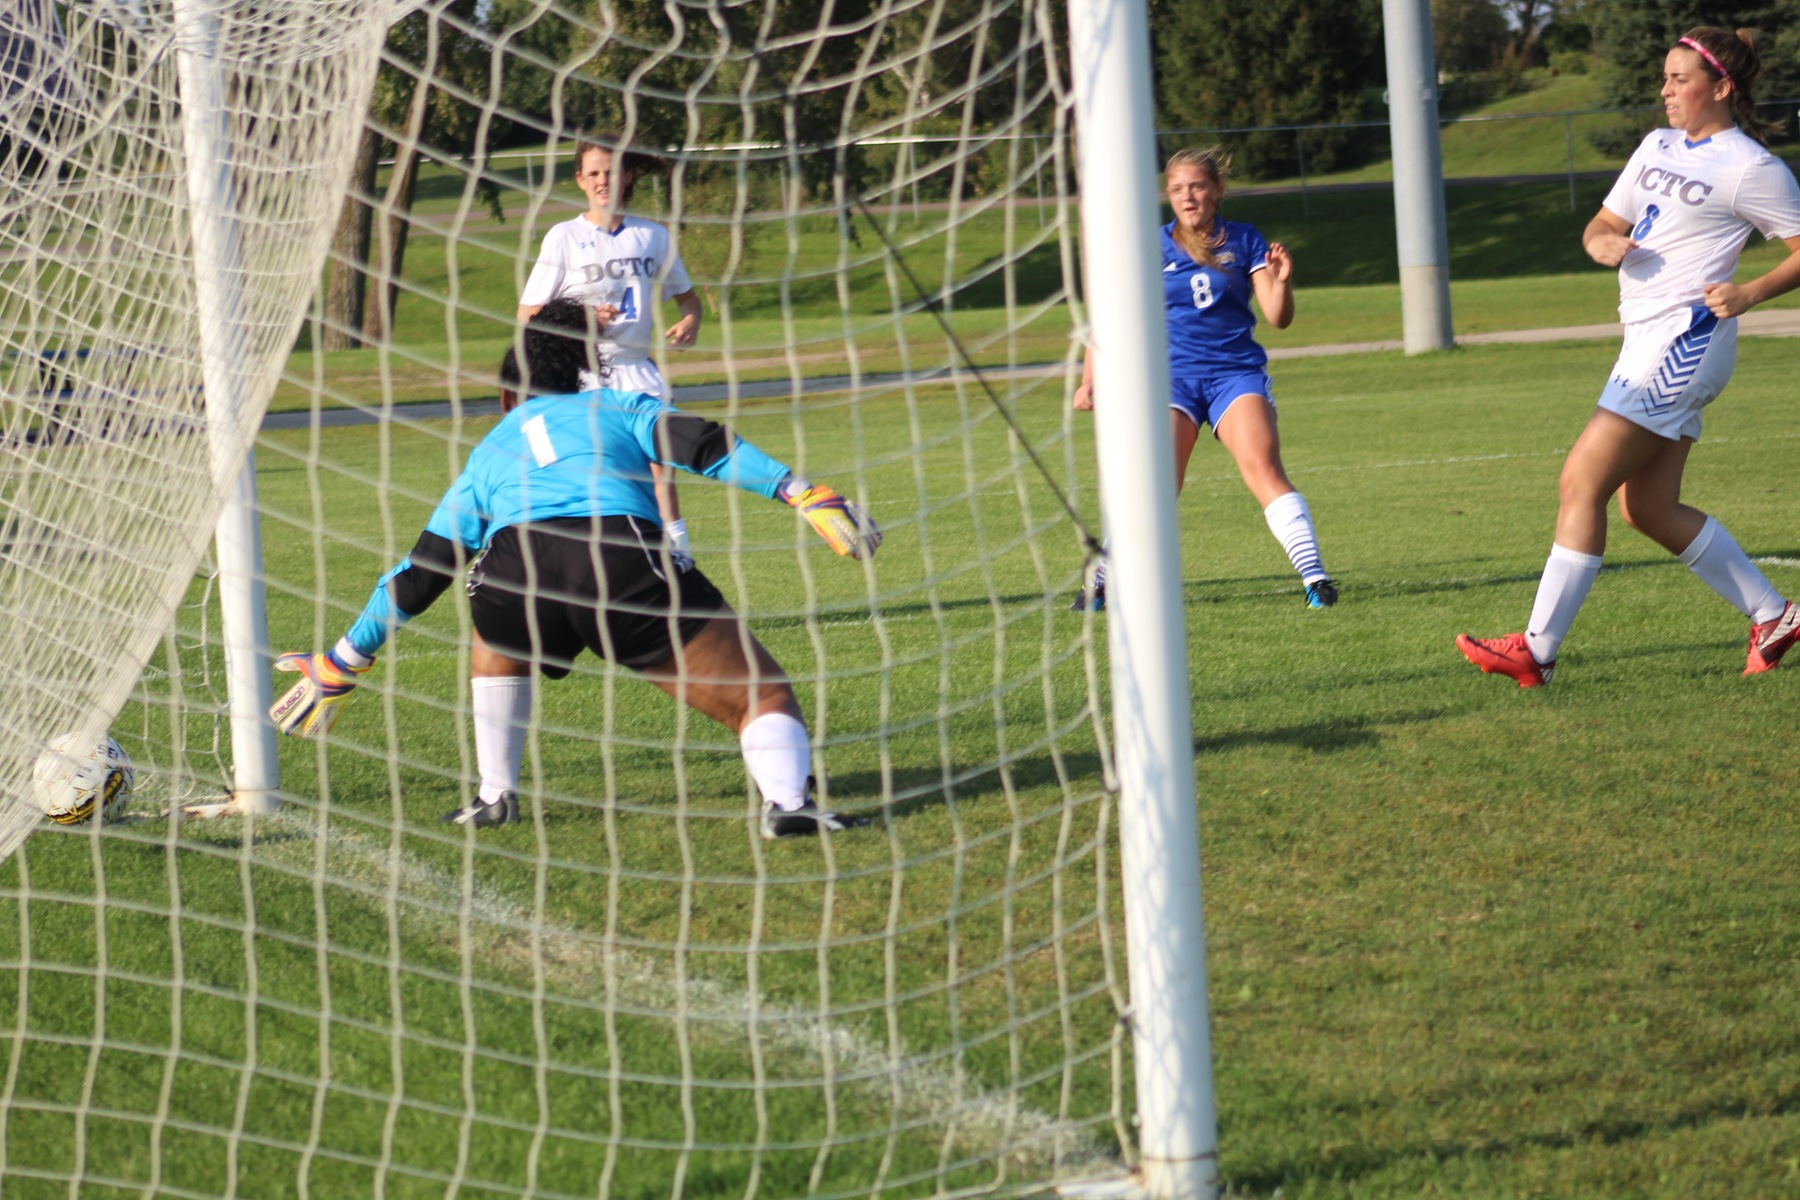 Rylie Smith scores the first goal of the season for the NIACC women's soccer team in Saturday's match against DCTC.